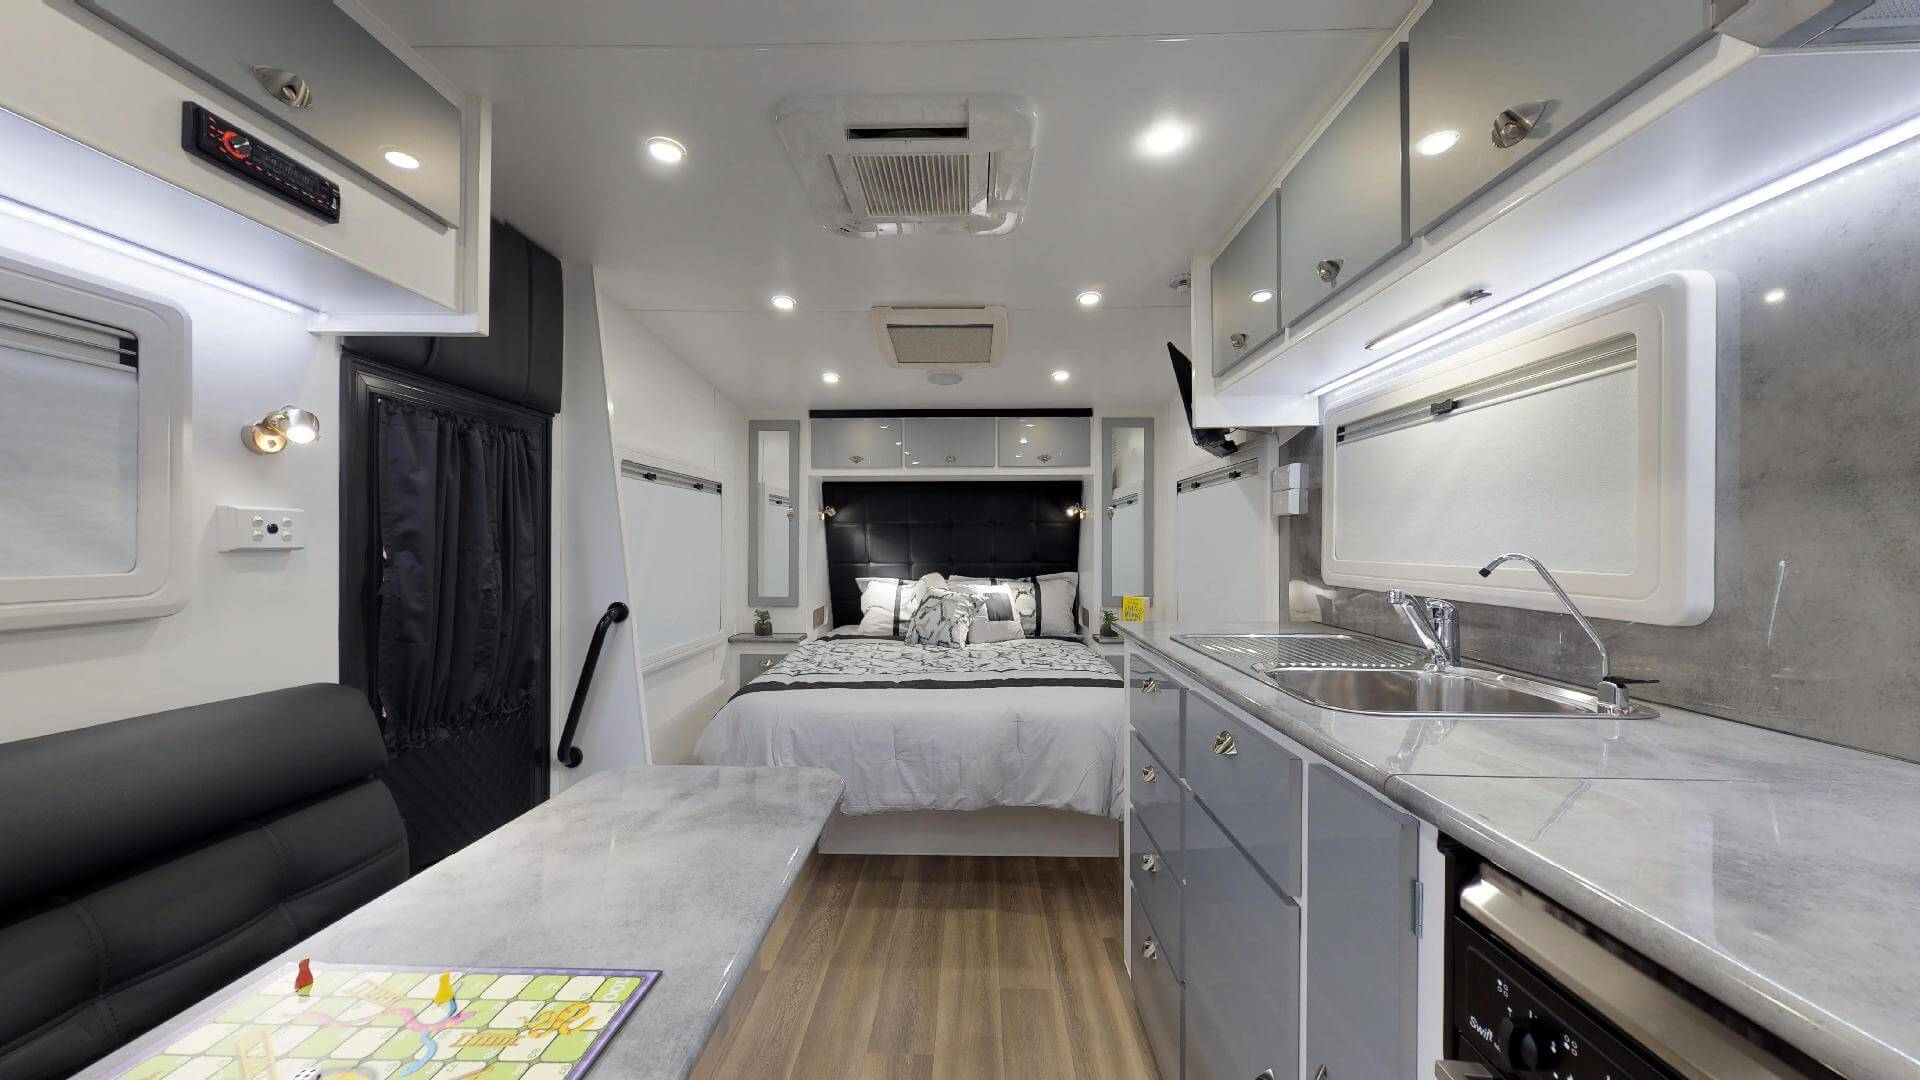 23ft-Ultimate-Family-Design-Family-Bunks-By-Condor-Caravans-02152019_095017